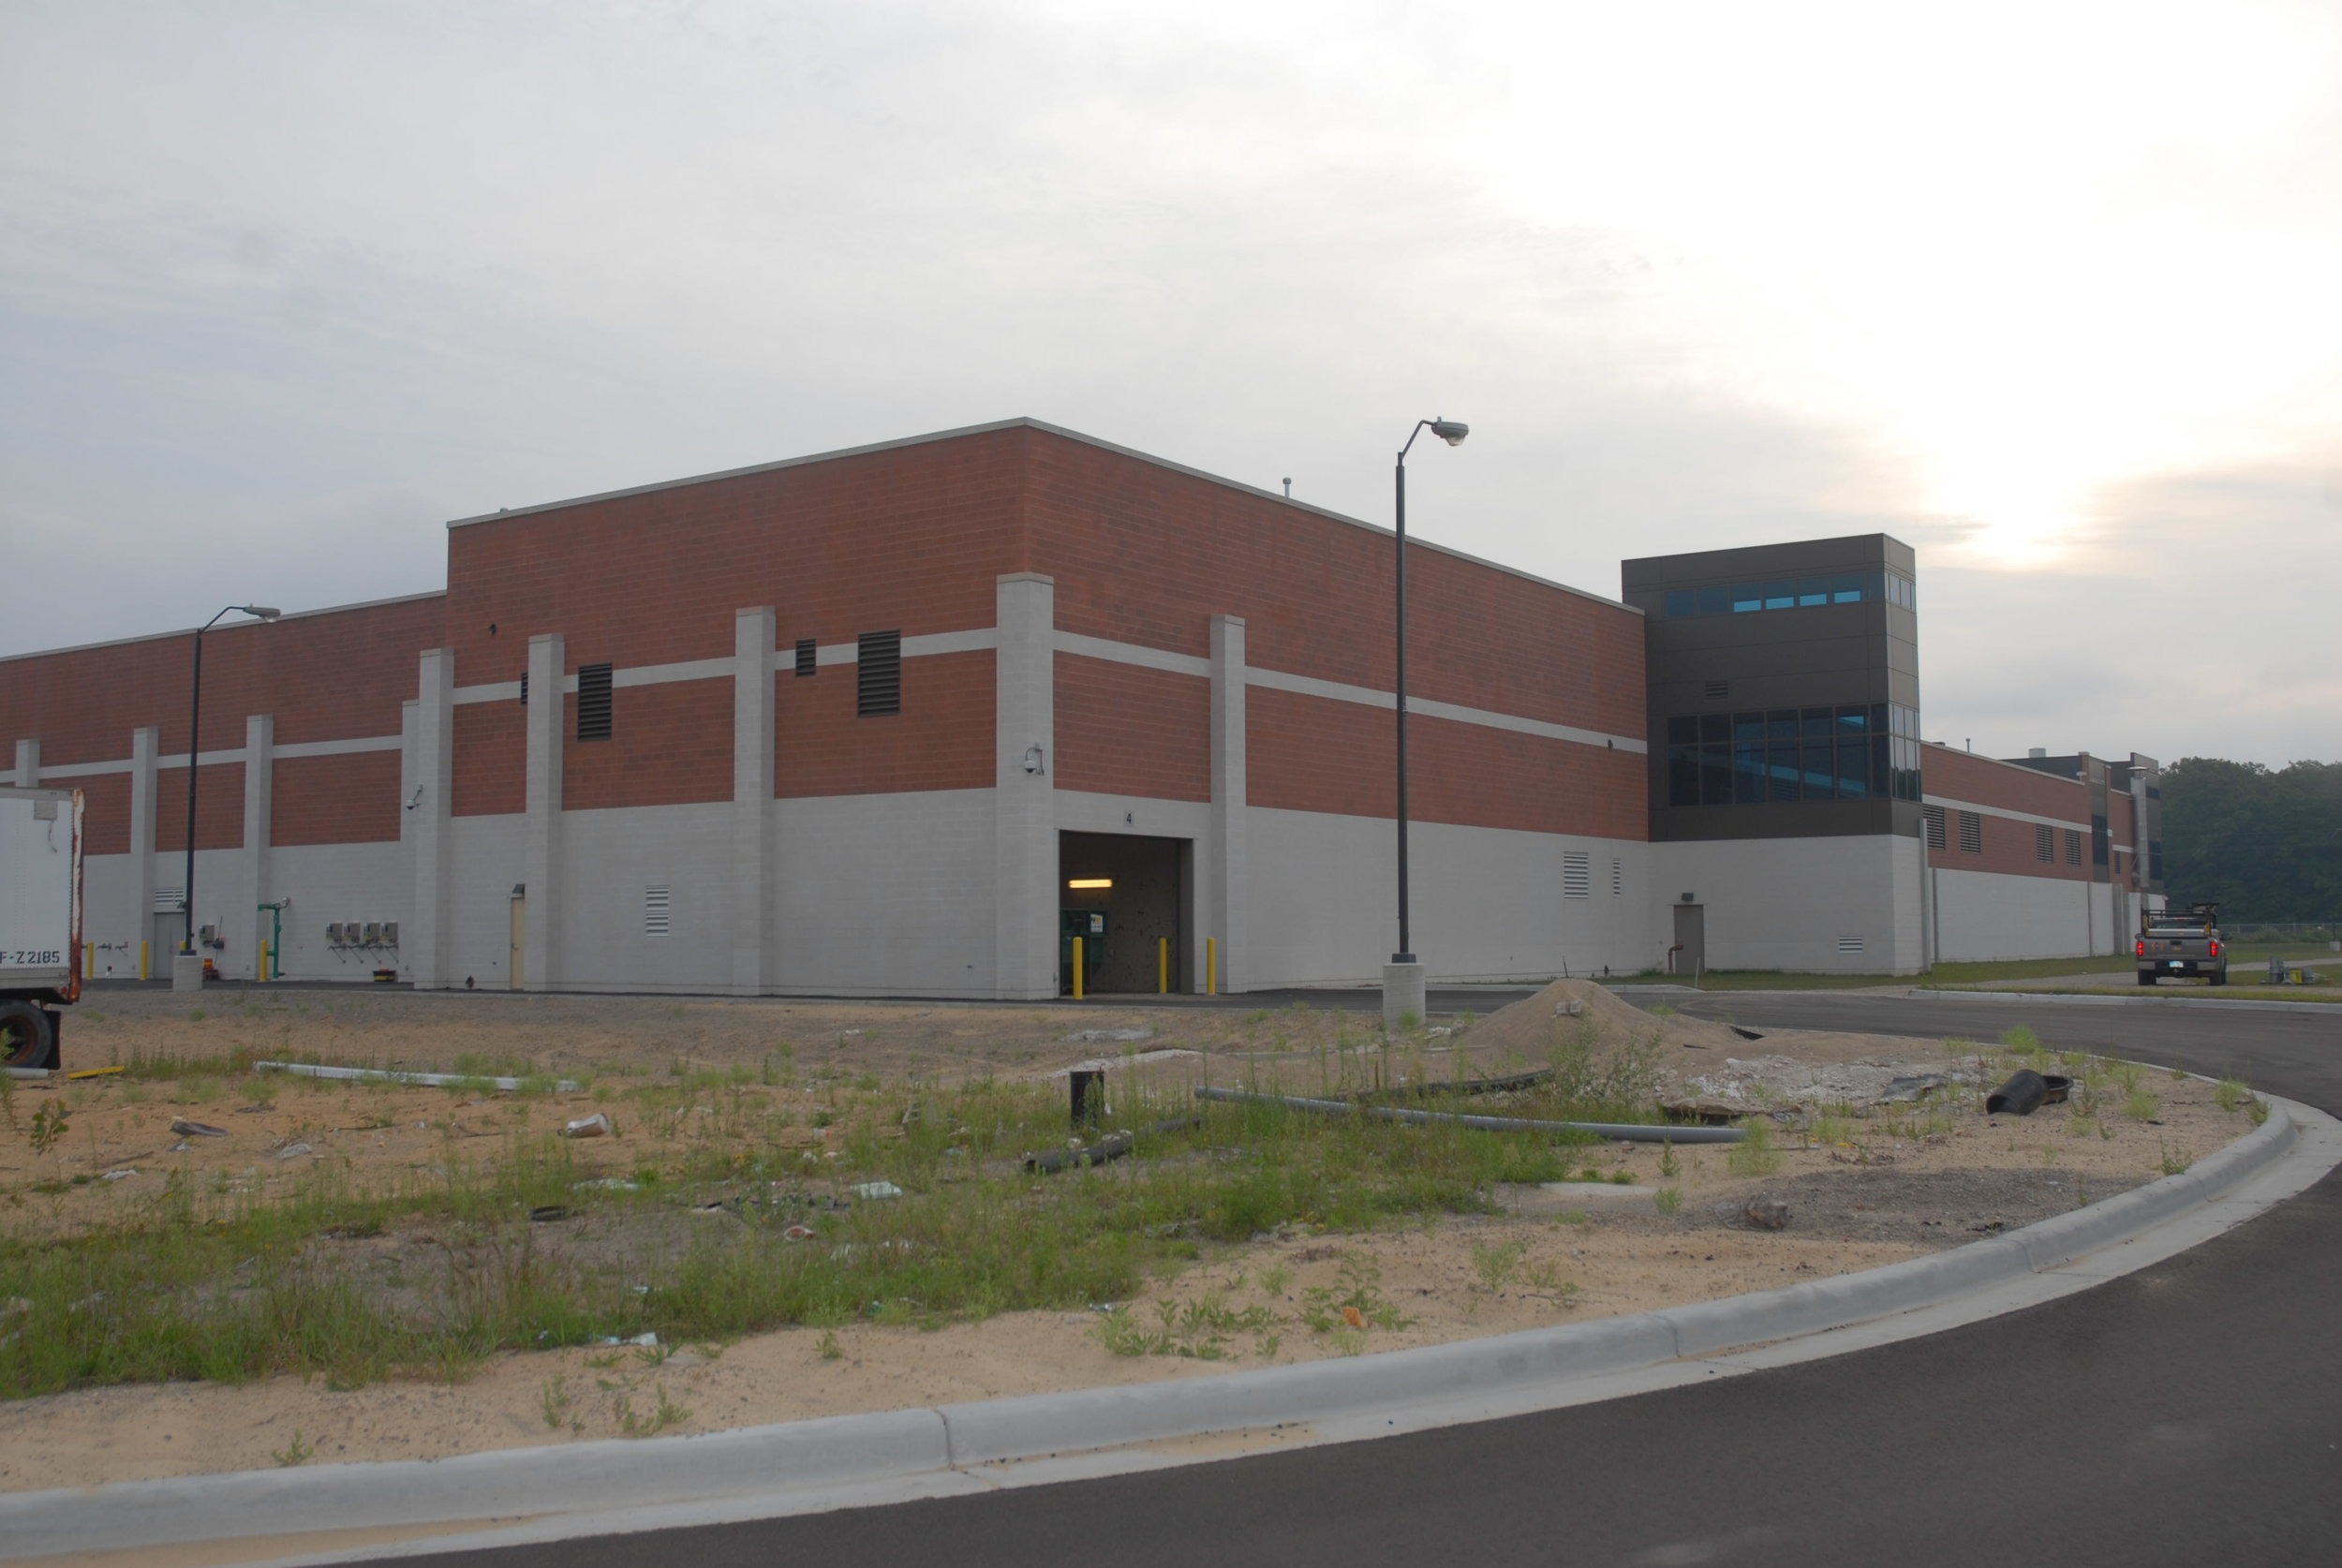 Donald K. Shine Water Treatment Plant